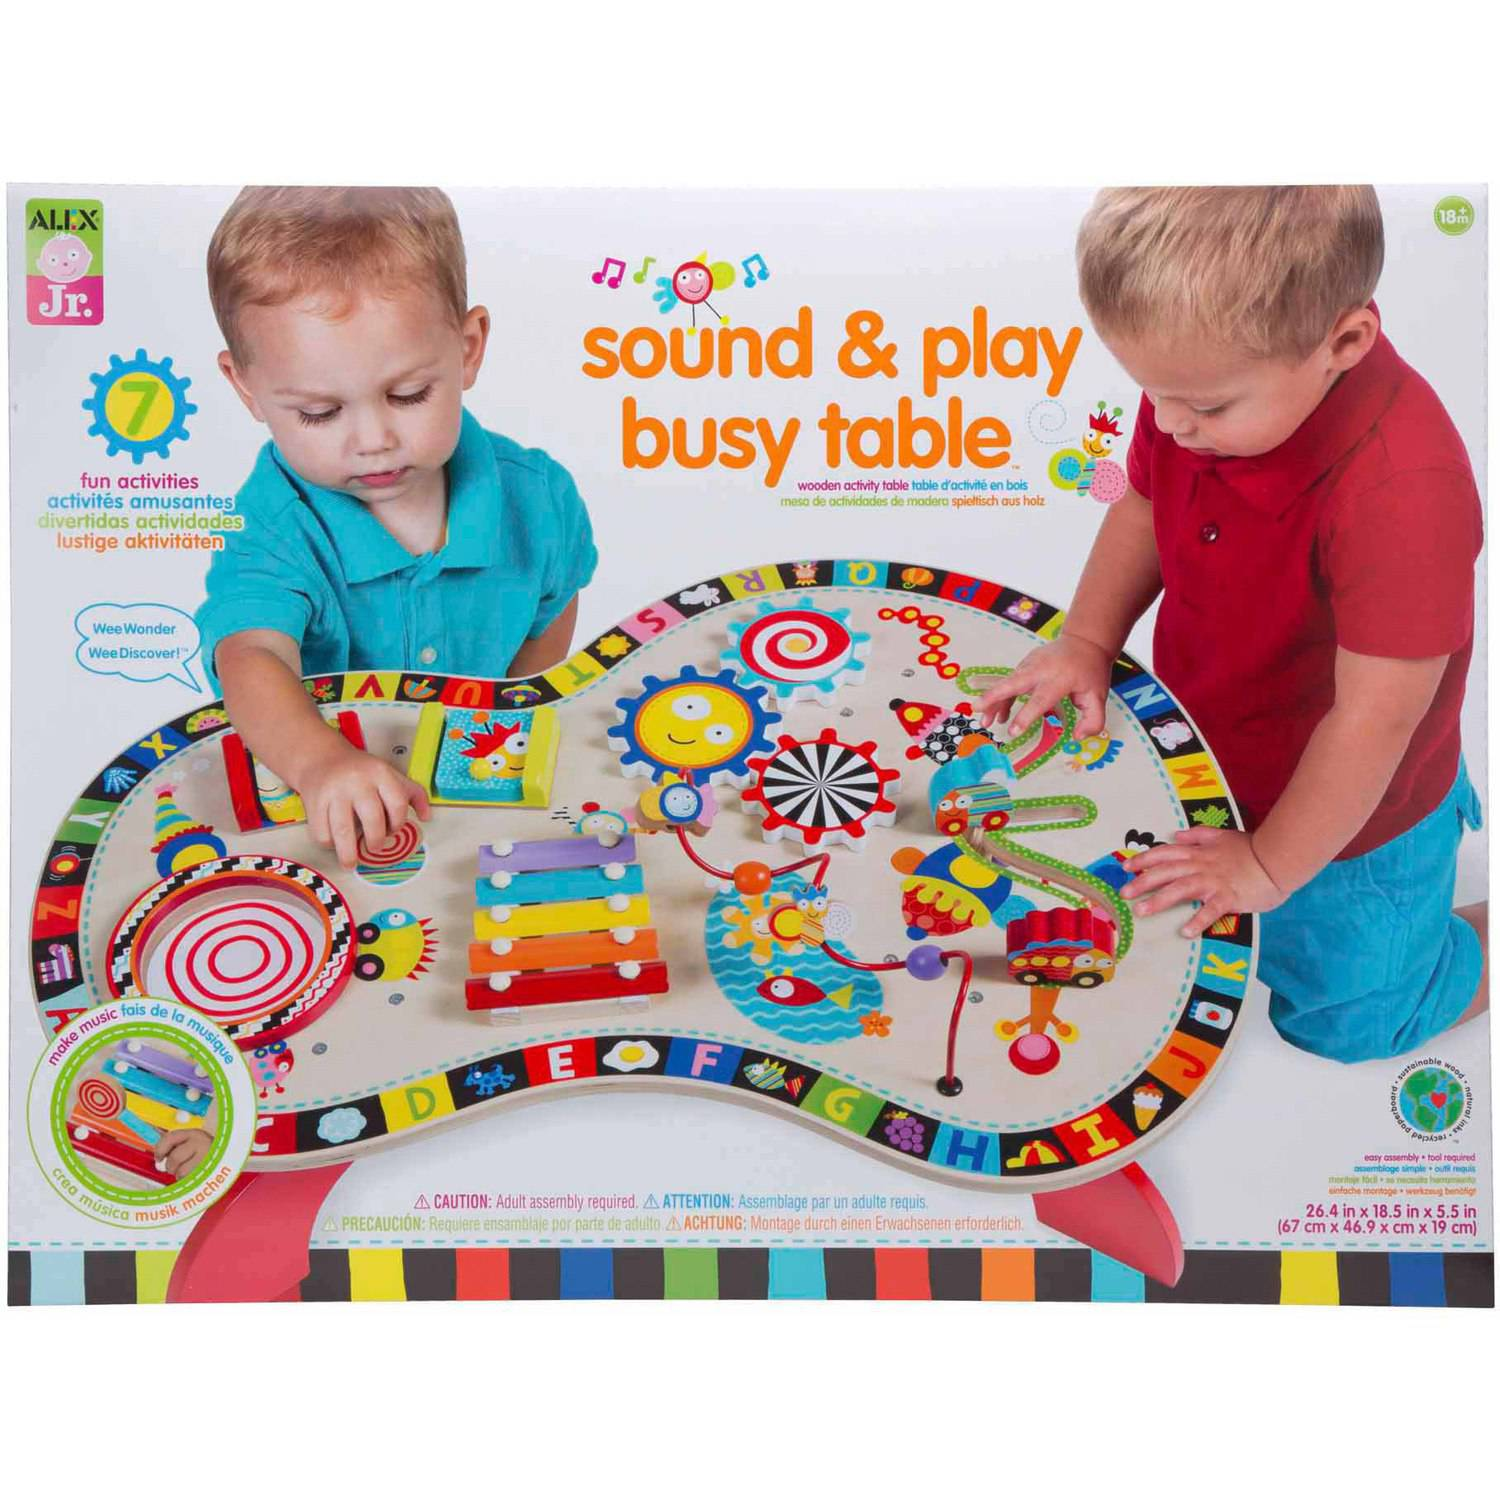 ALEX Toys ALEX Jr. Sound and Play Busy Table Baby Activity Center with 8 Activities